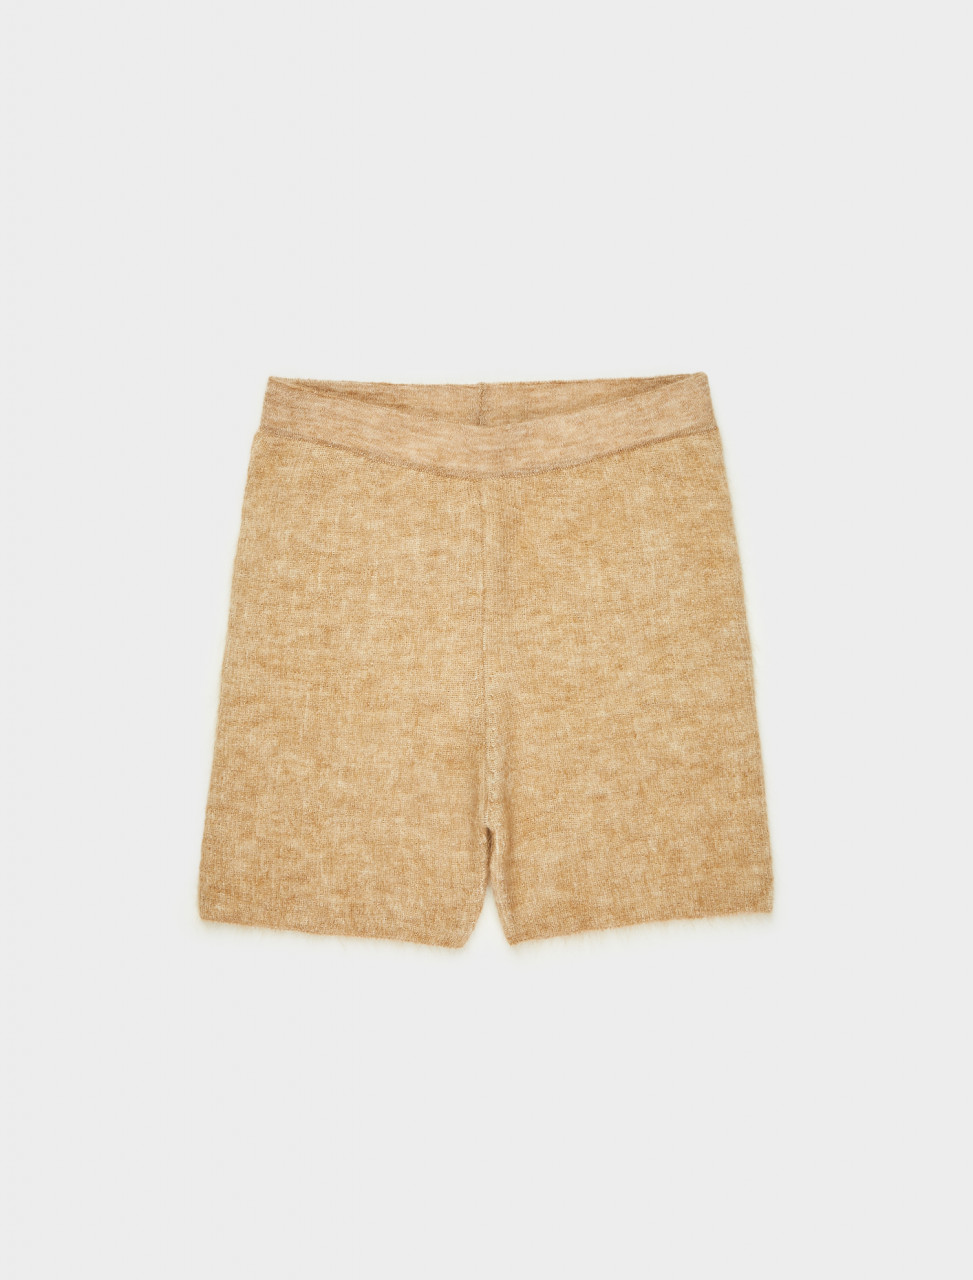 203KN55-203-214831 JACQUEMUS LE SHORT ARANCIA IN CAMEL STRIPES FRONT